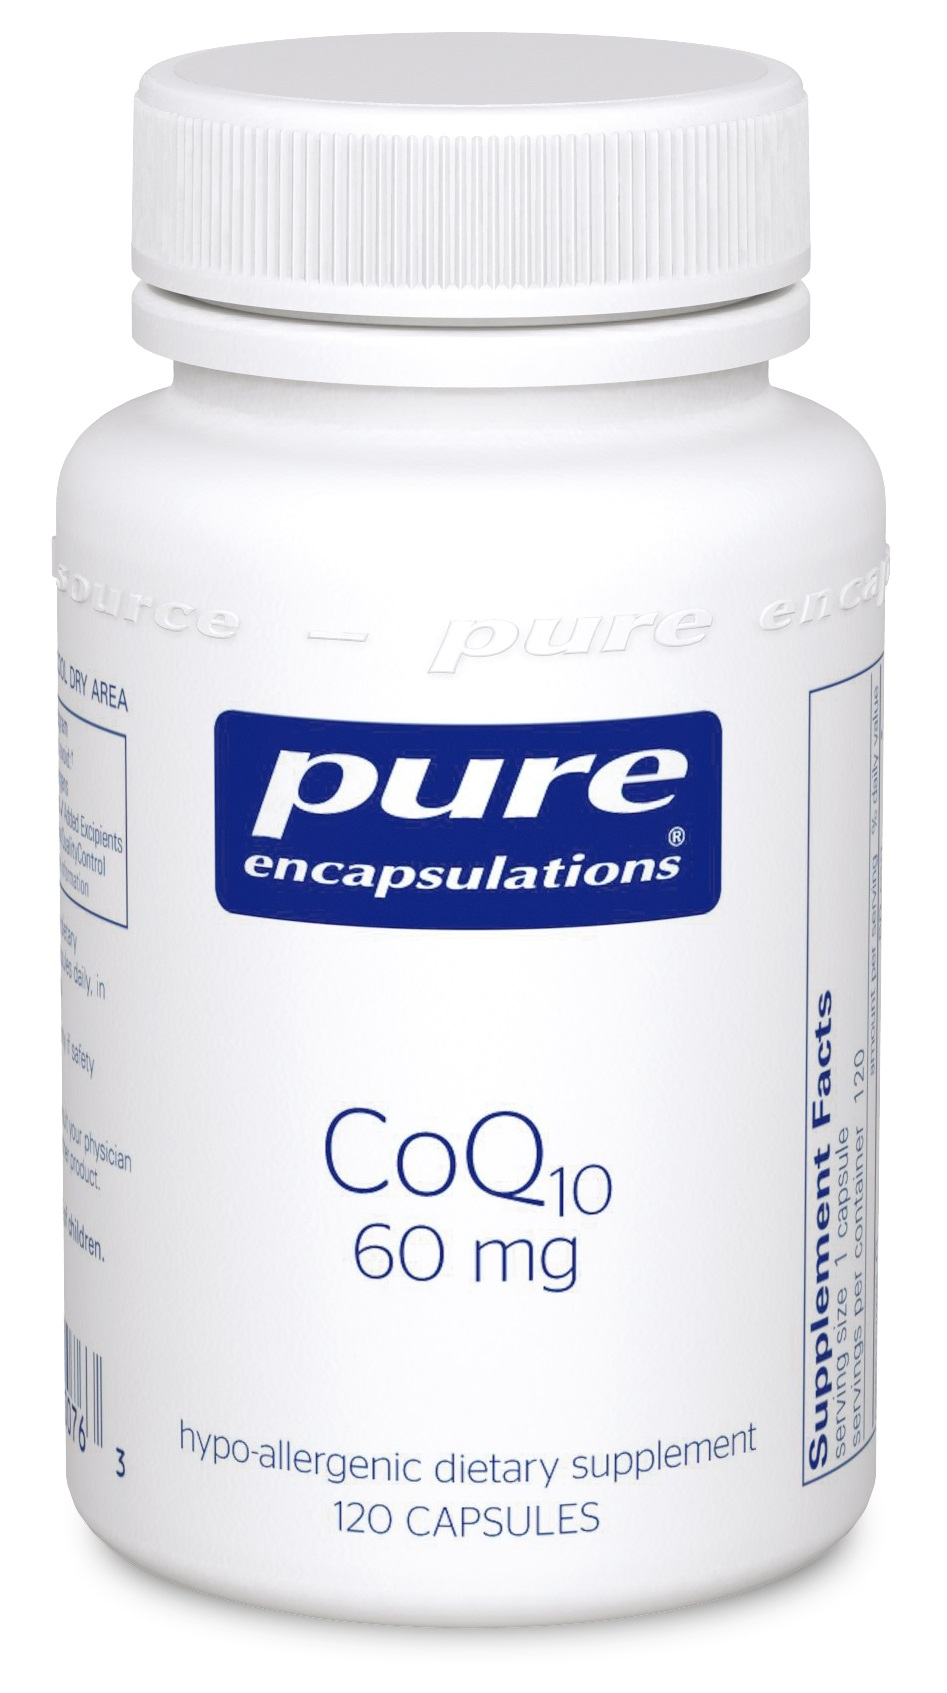 Pure Encapsulations CoQ10 60 mg